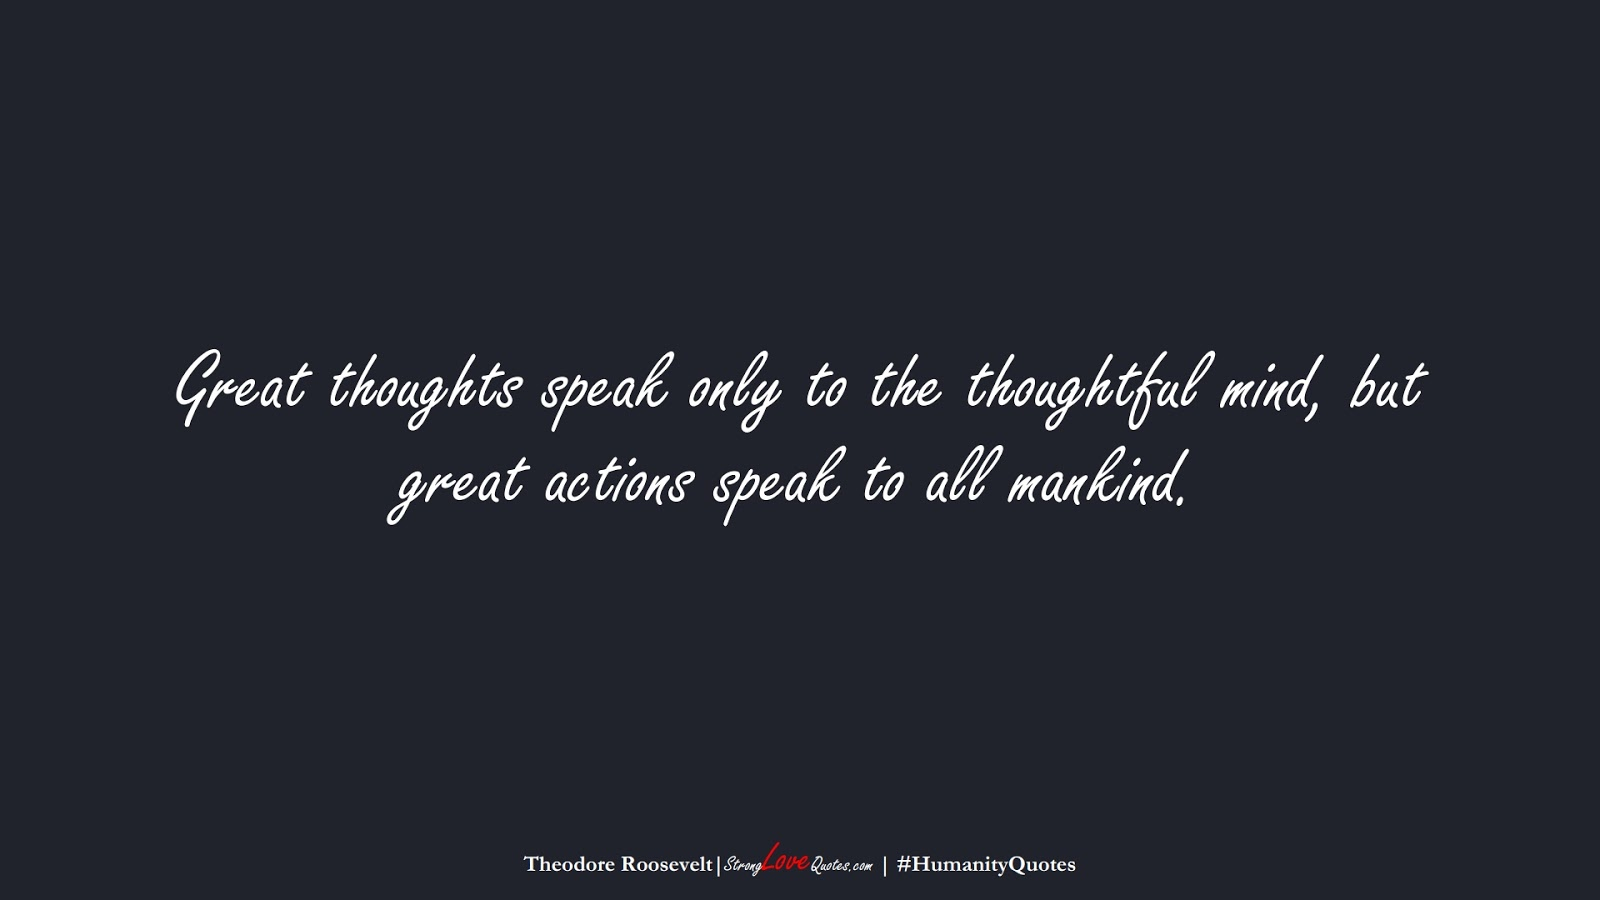 Great thoughts speak only to the thoughtful mind, but great actions speak to all mankind. (Theodore Roosevelt);  #HumanityQuotes